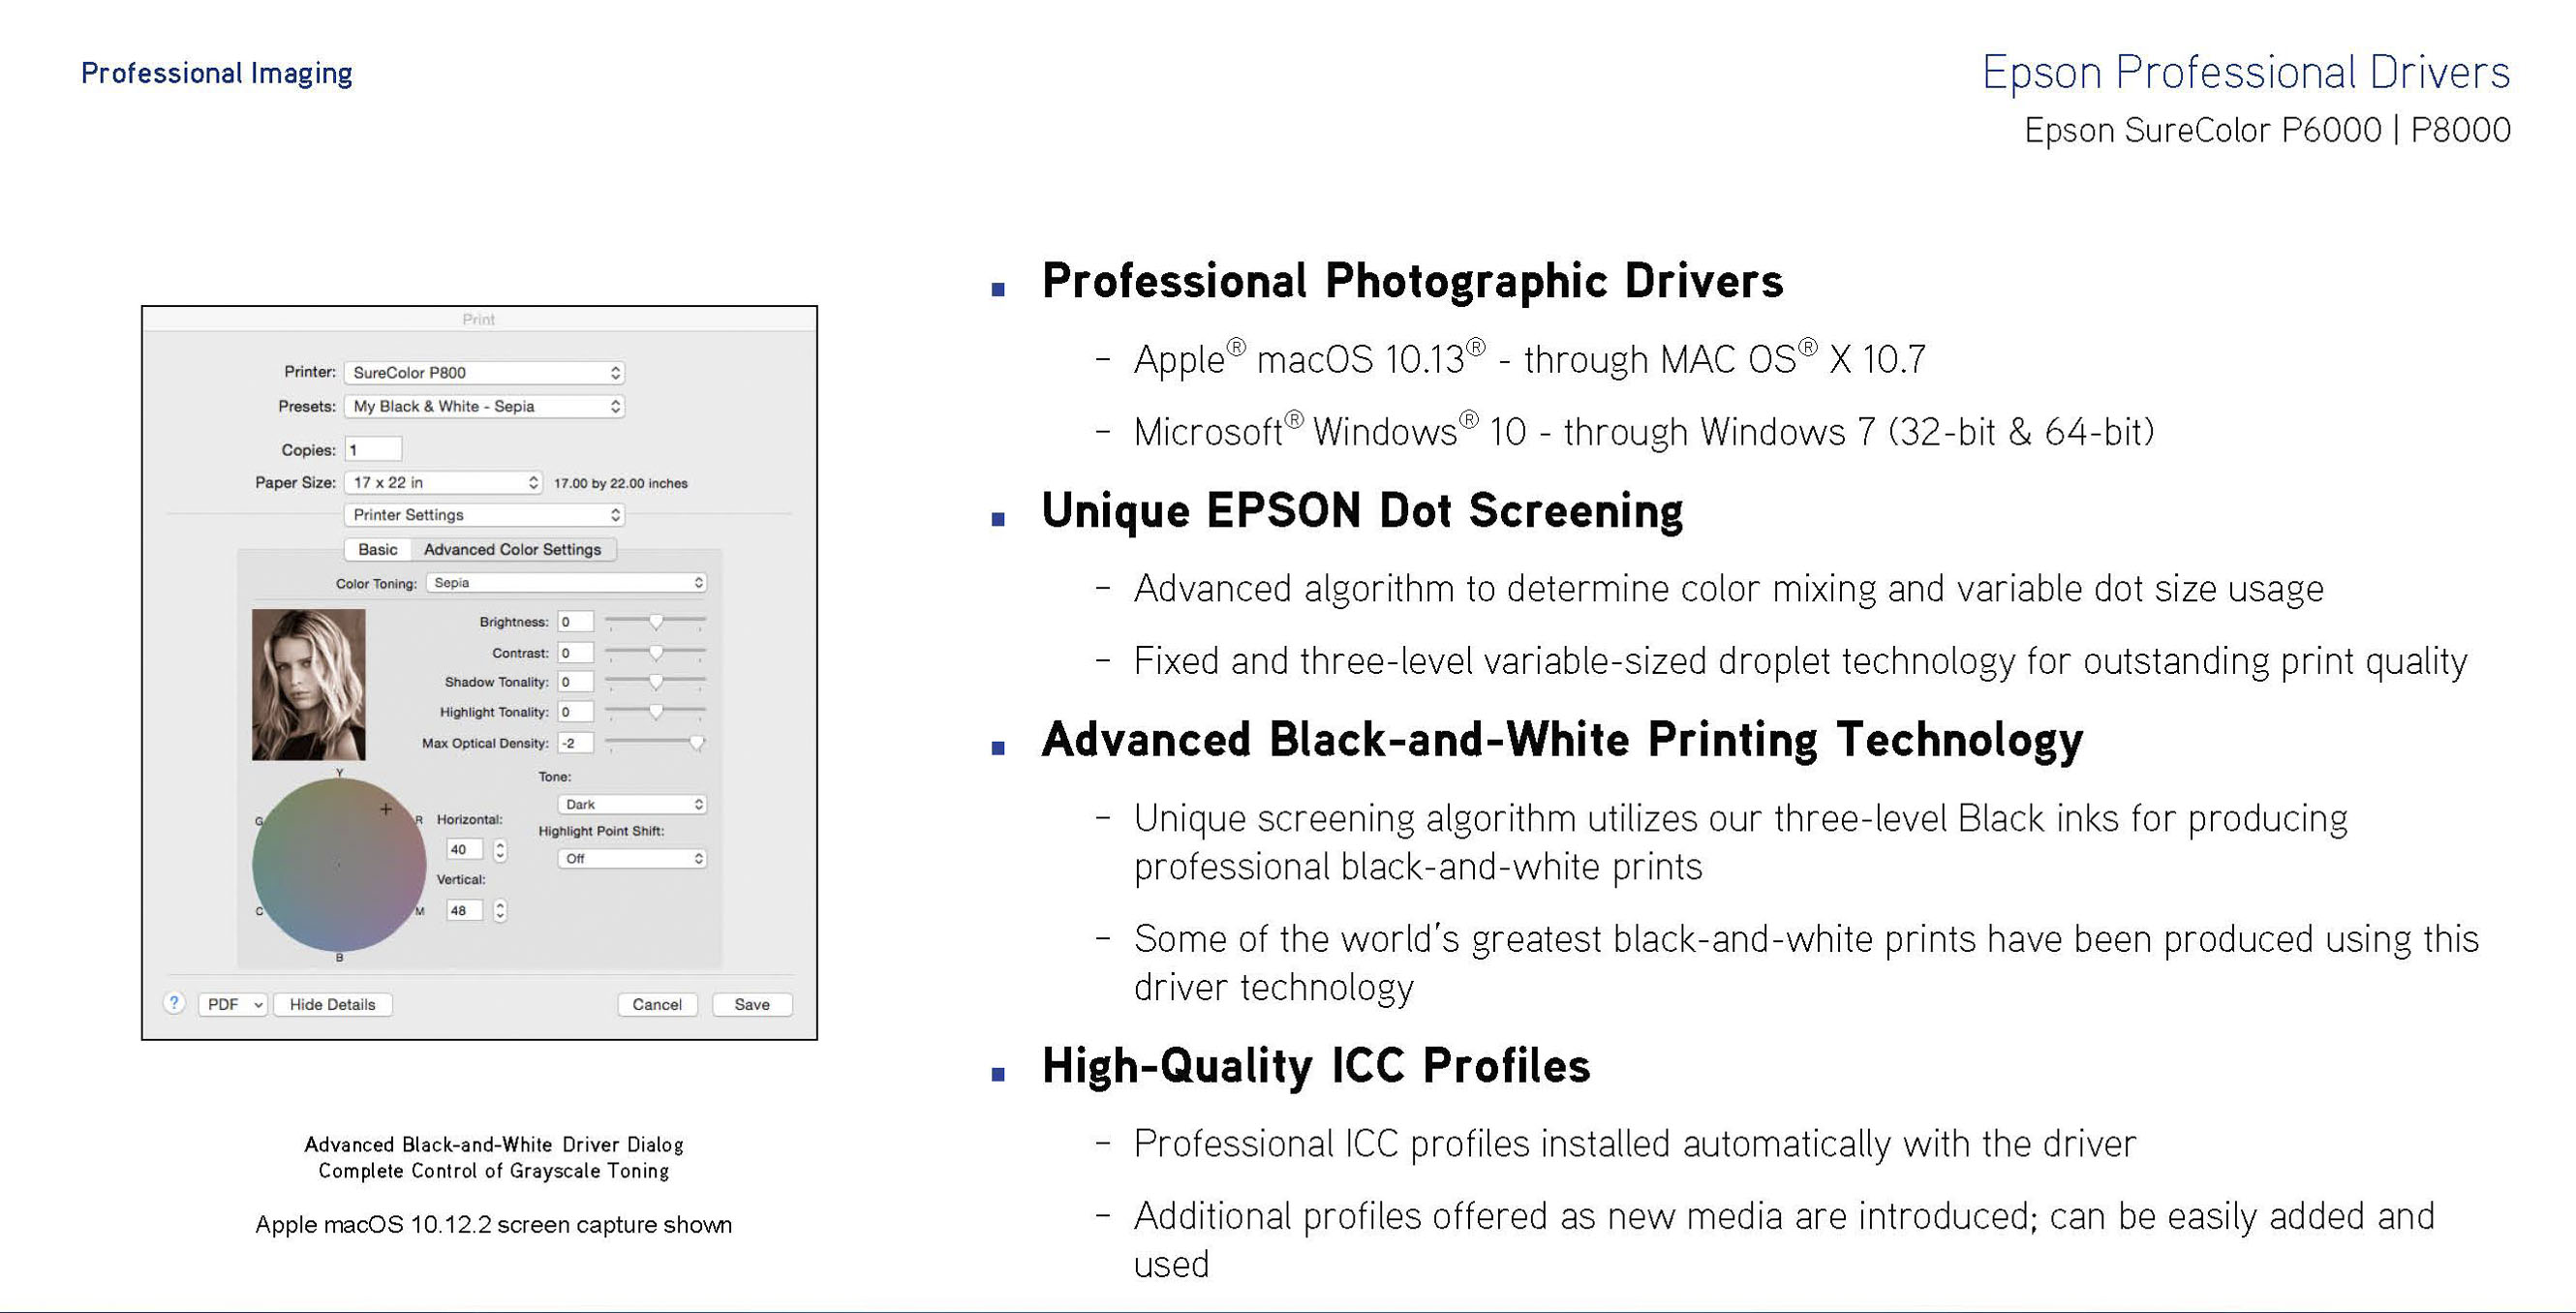 epson professional drivers